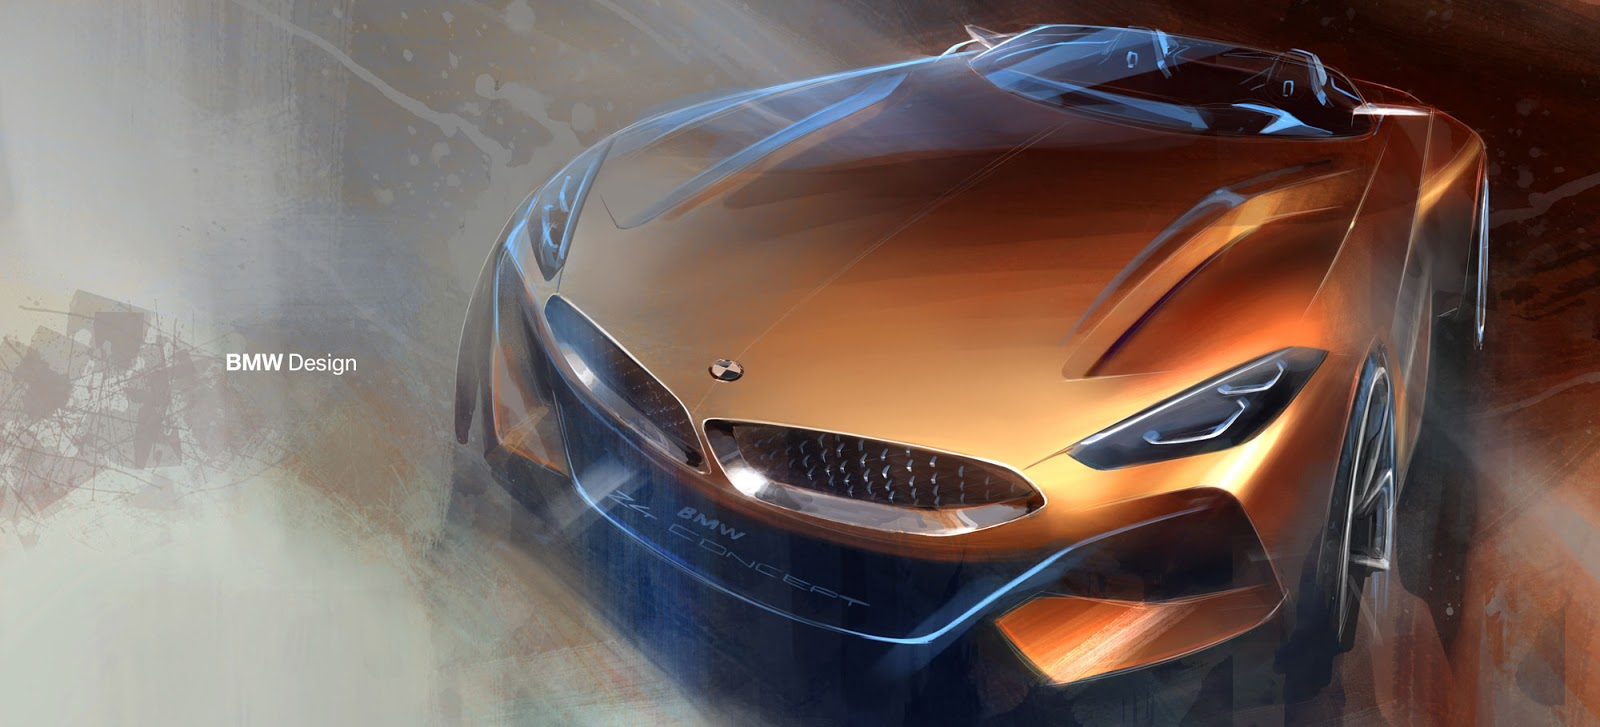 BMW Z4 sketch by Calvin Luk nose-on view